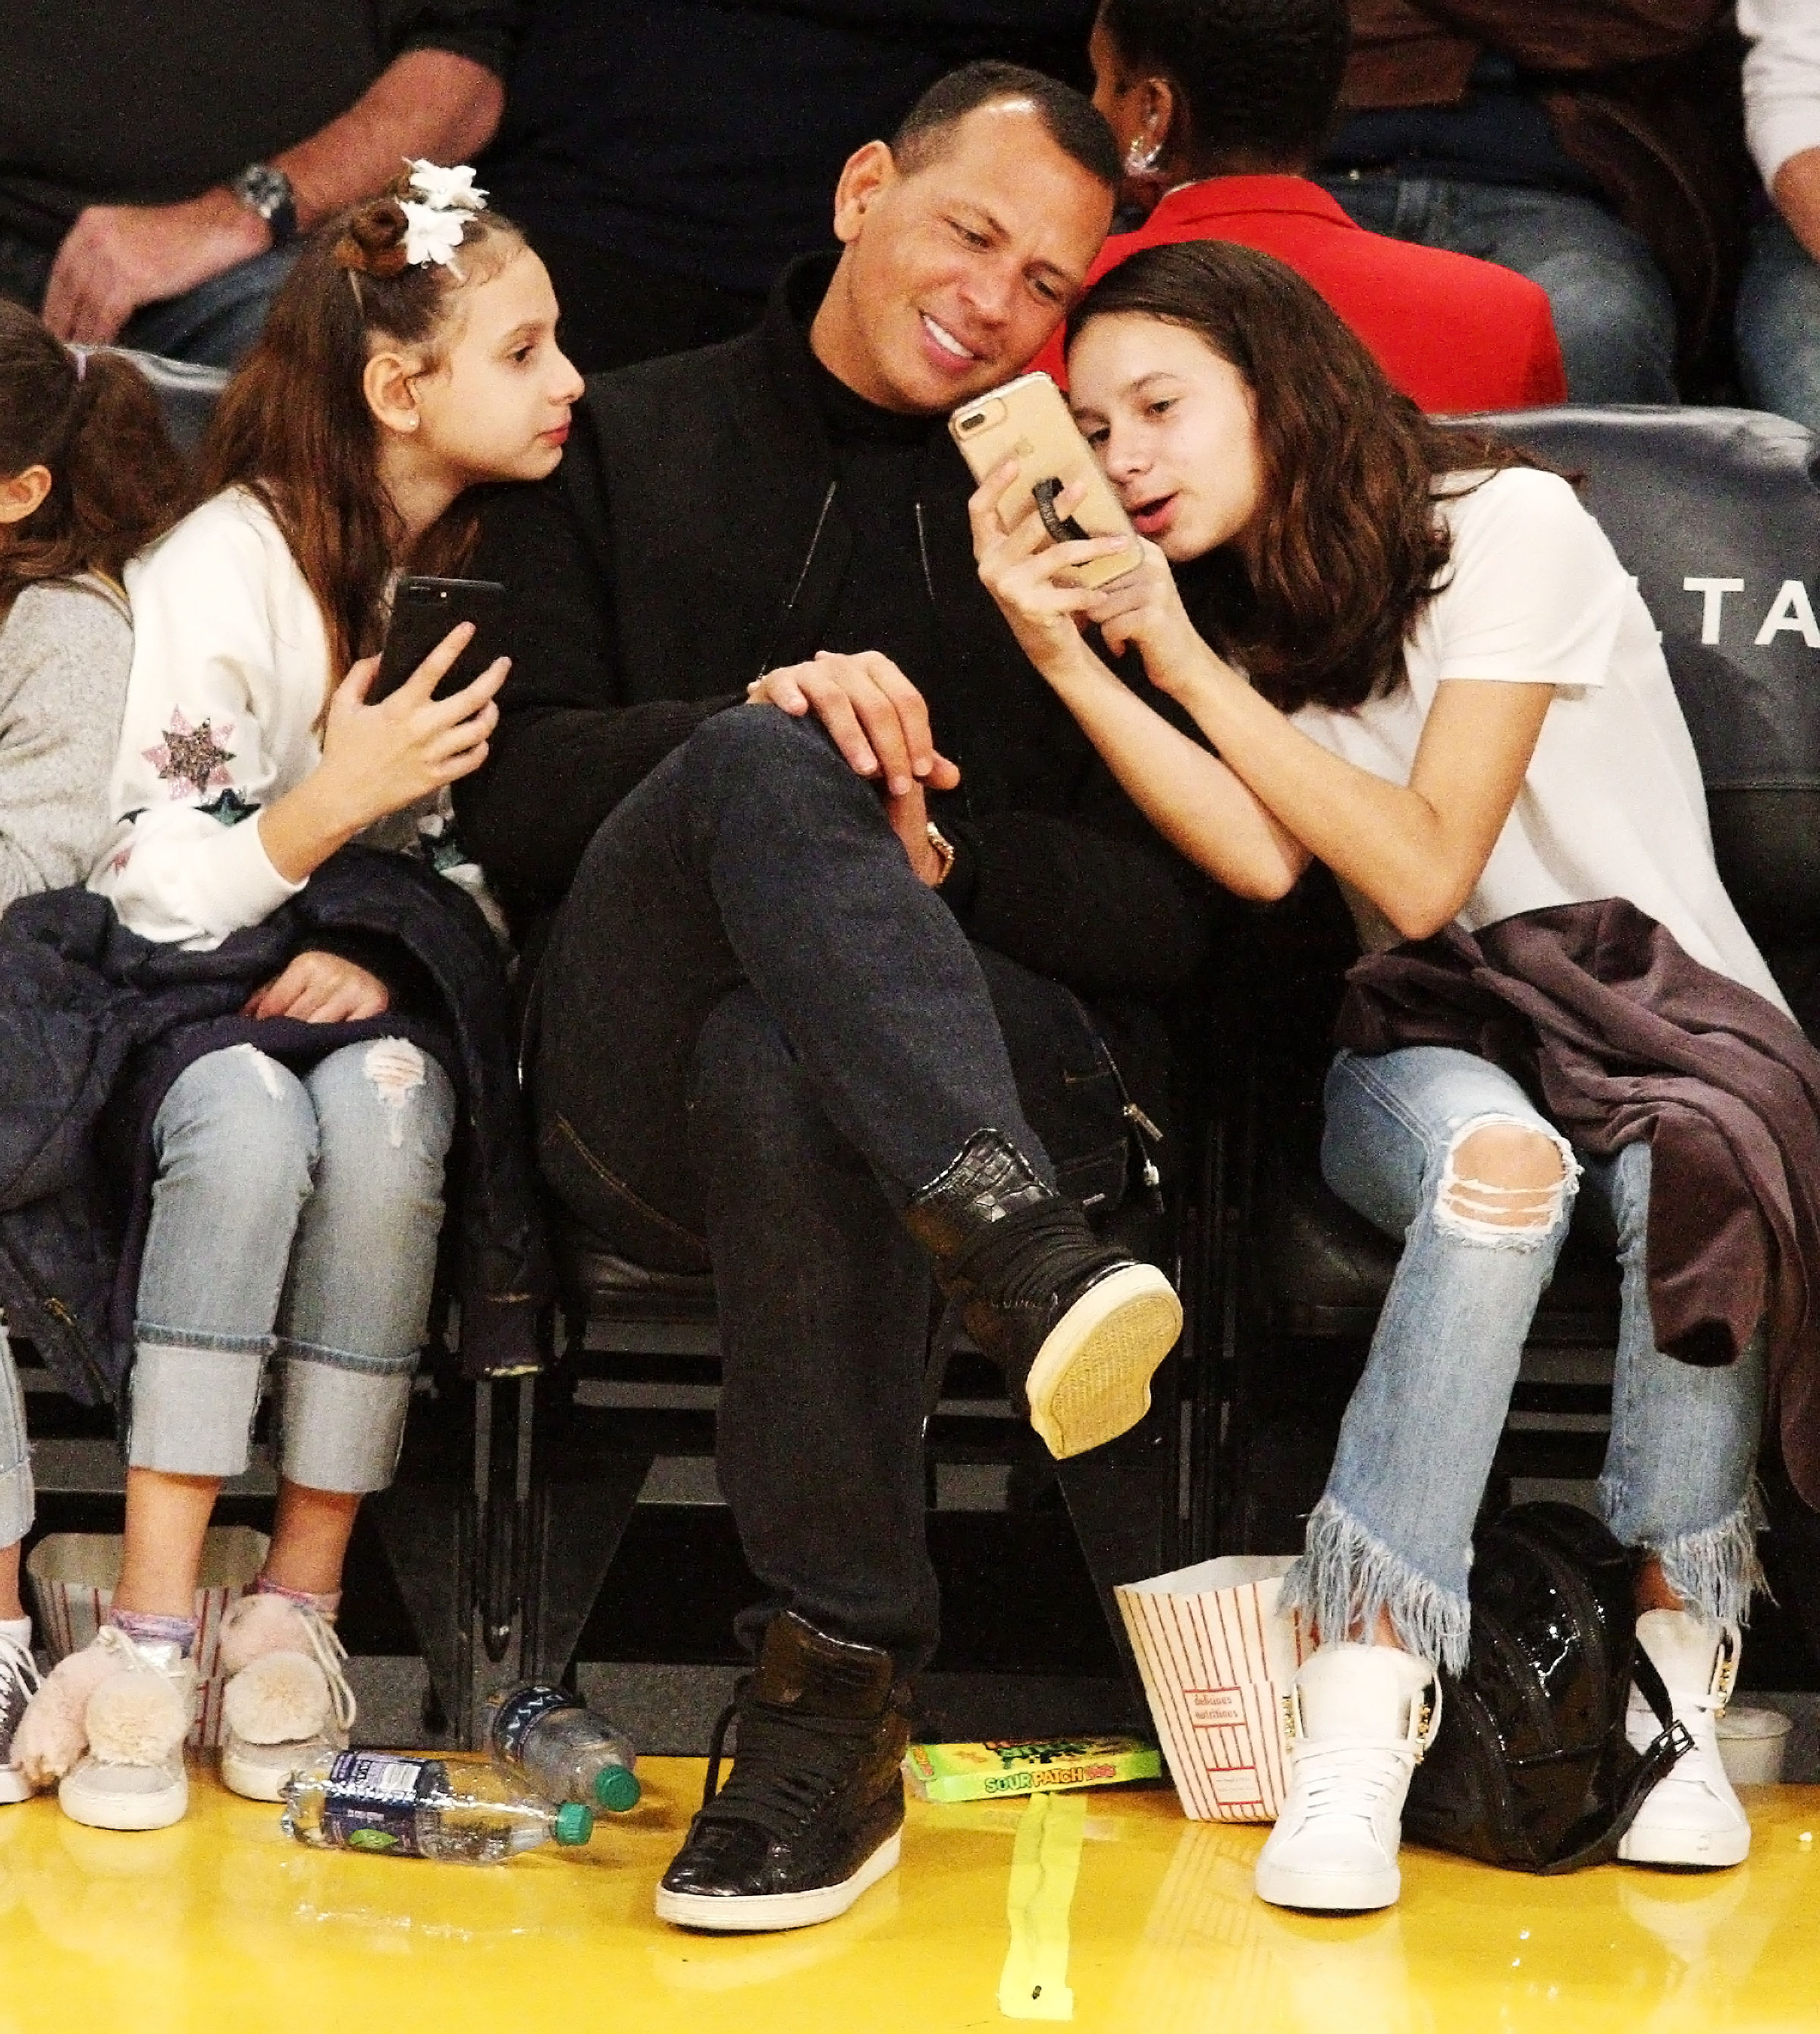 Alex Rodriguez Made Burner Instagram Account to Follow Daughters